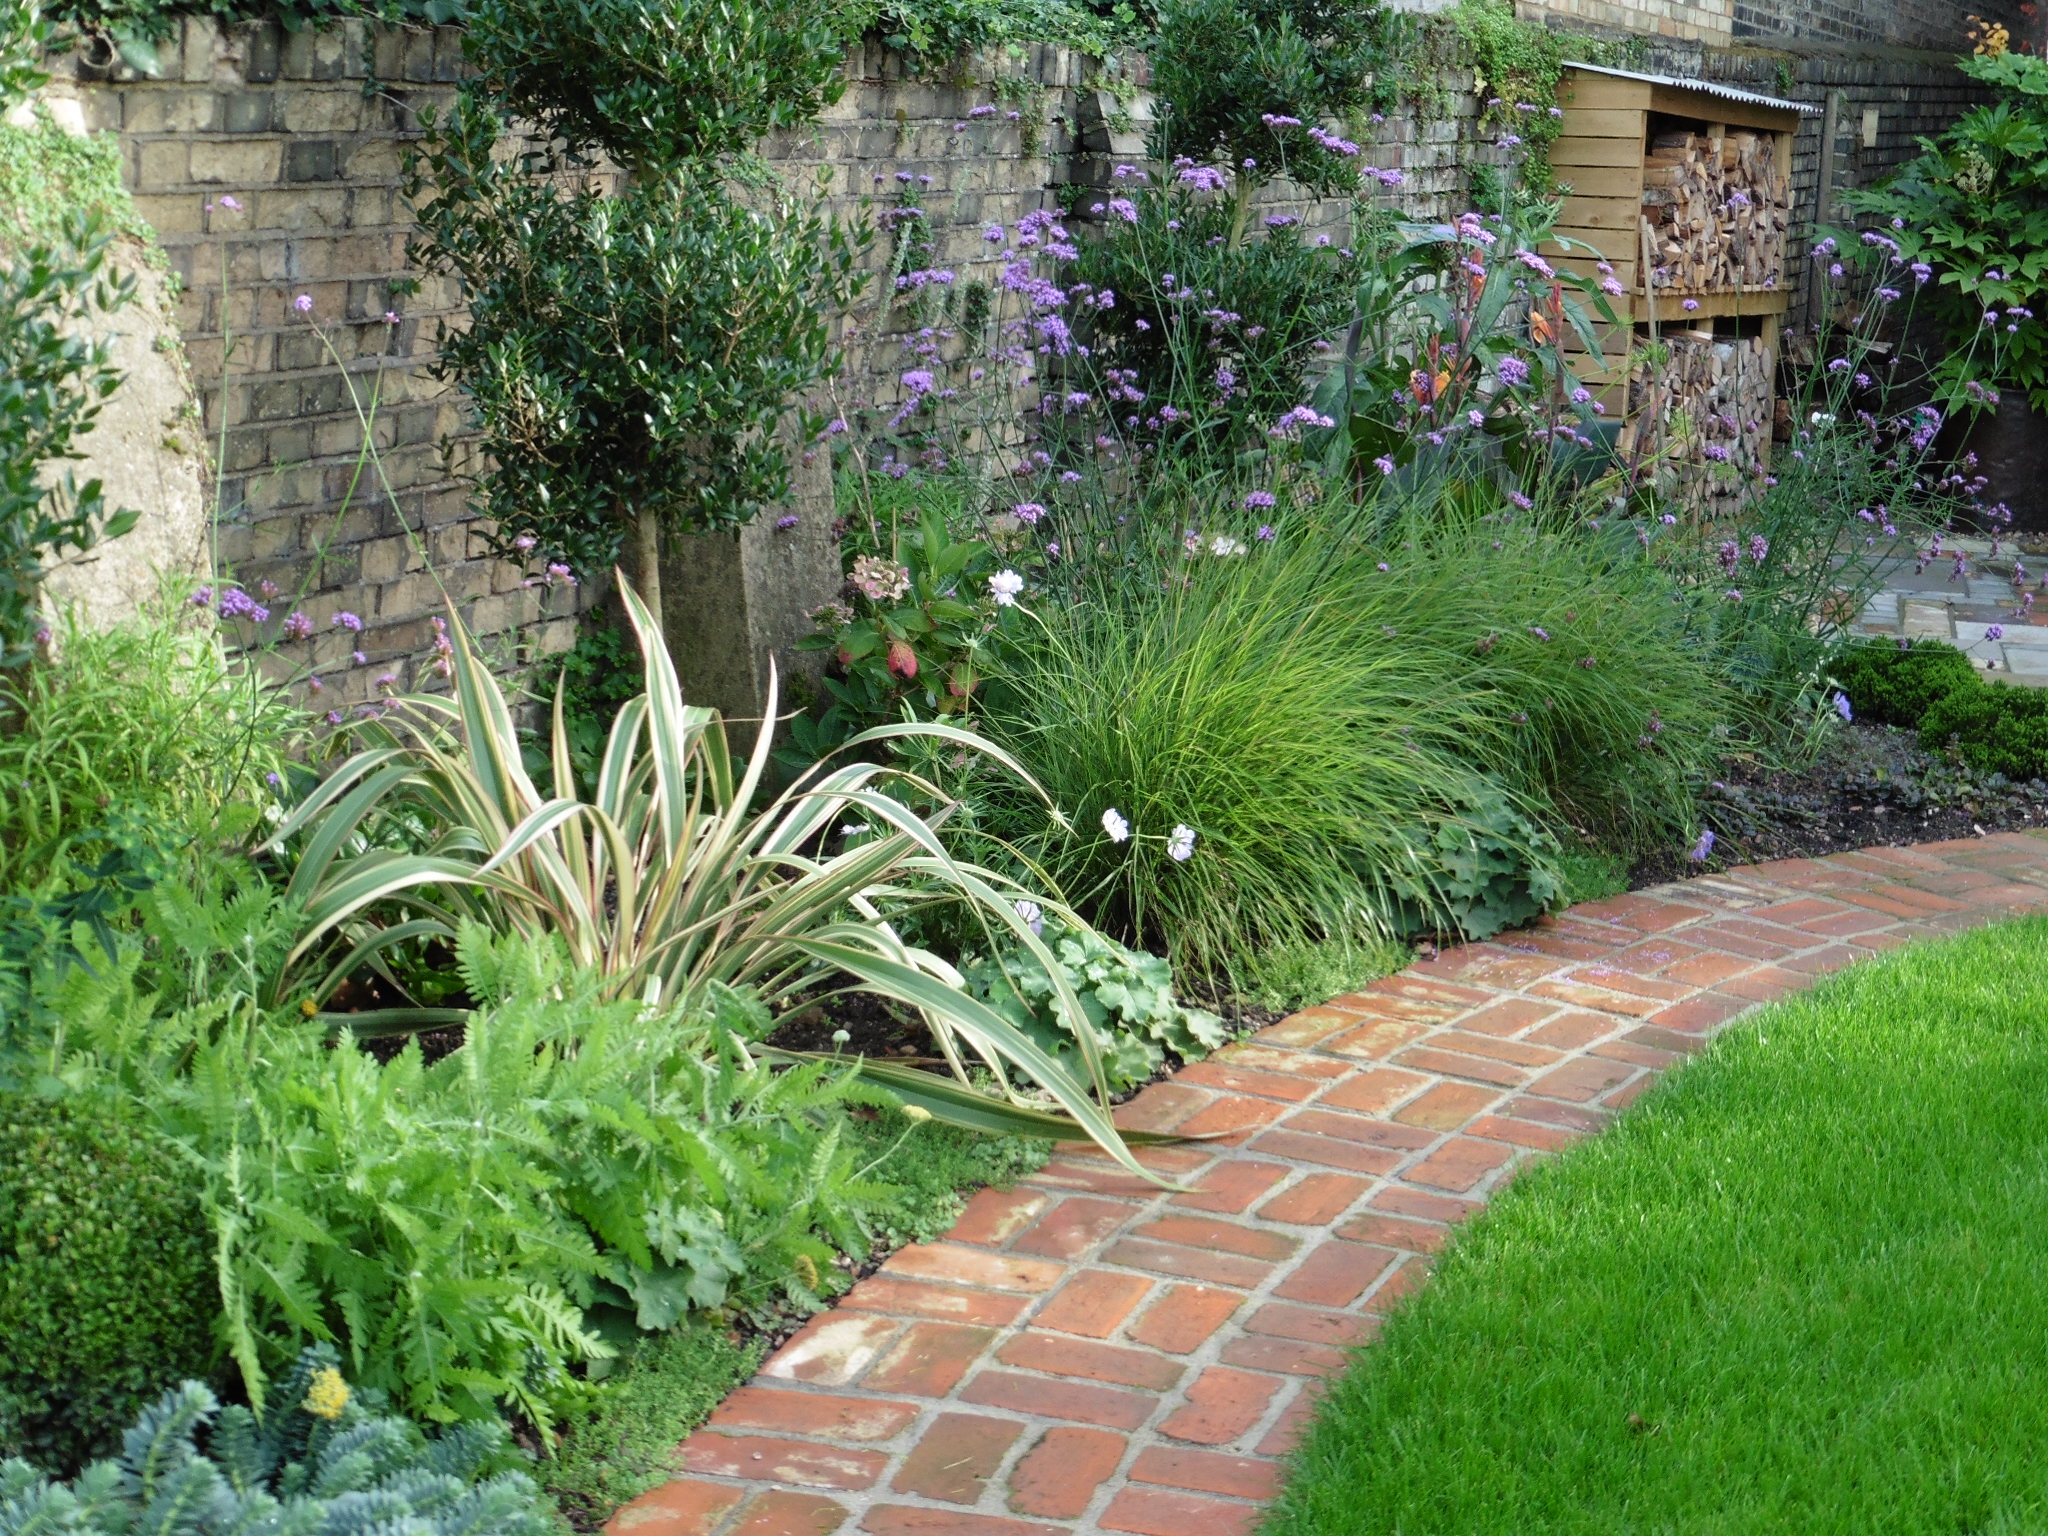 Helen riches garden design and writing for Garden design plans uk